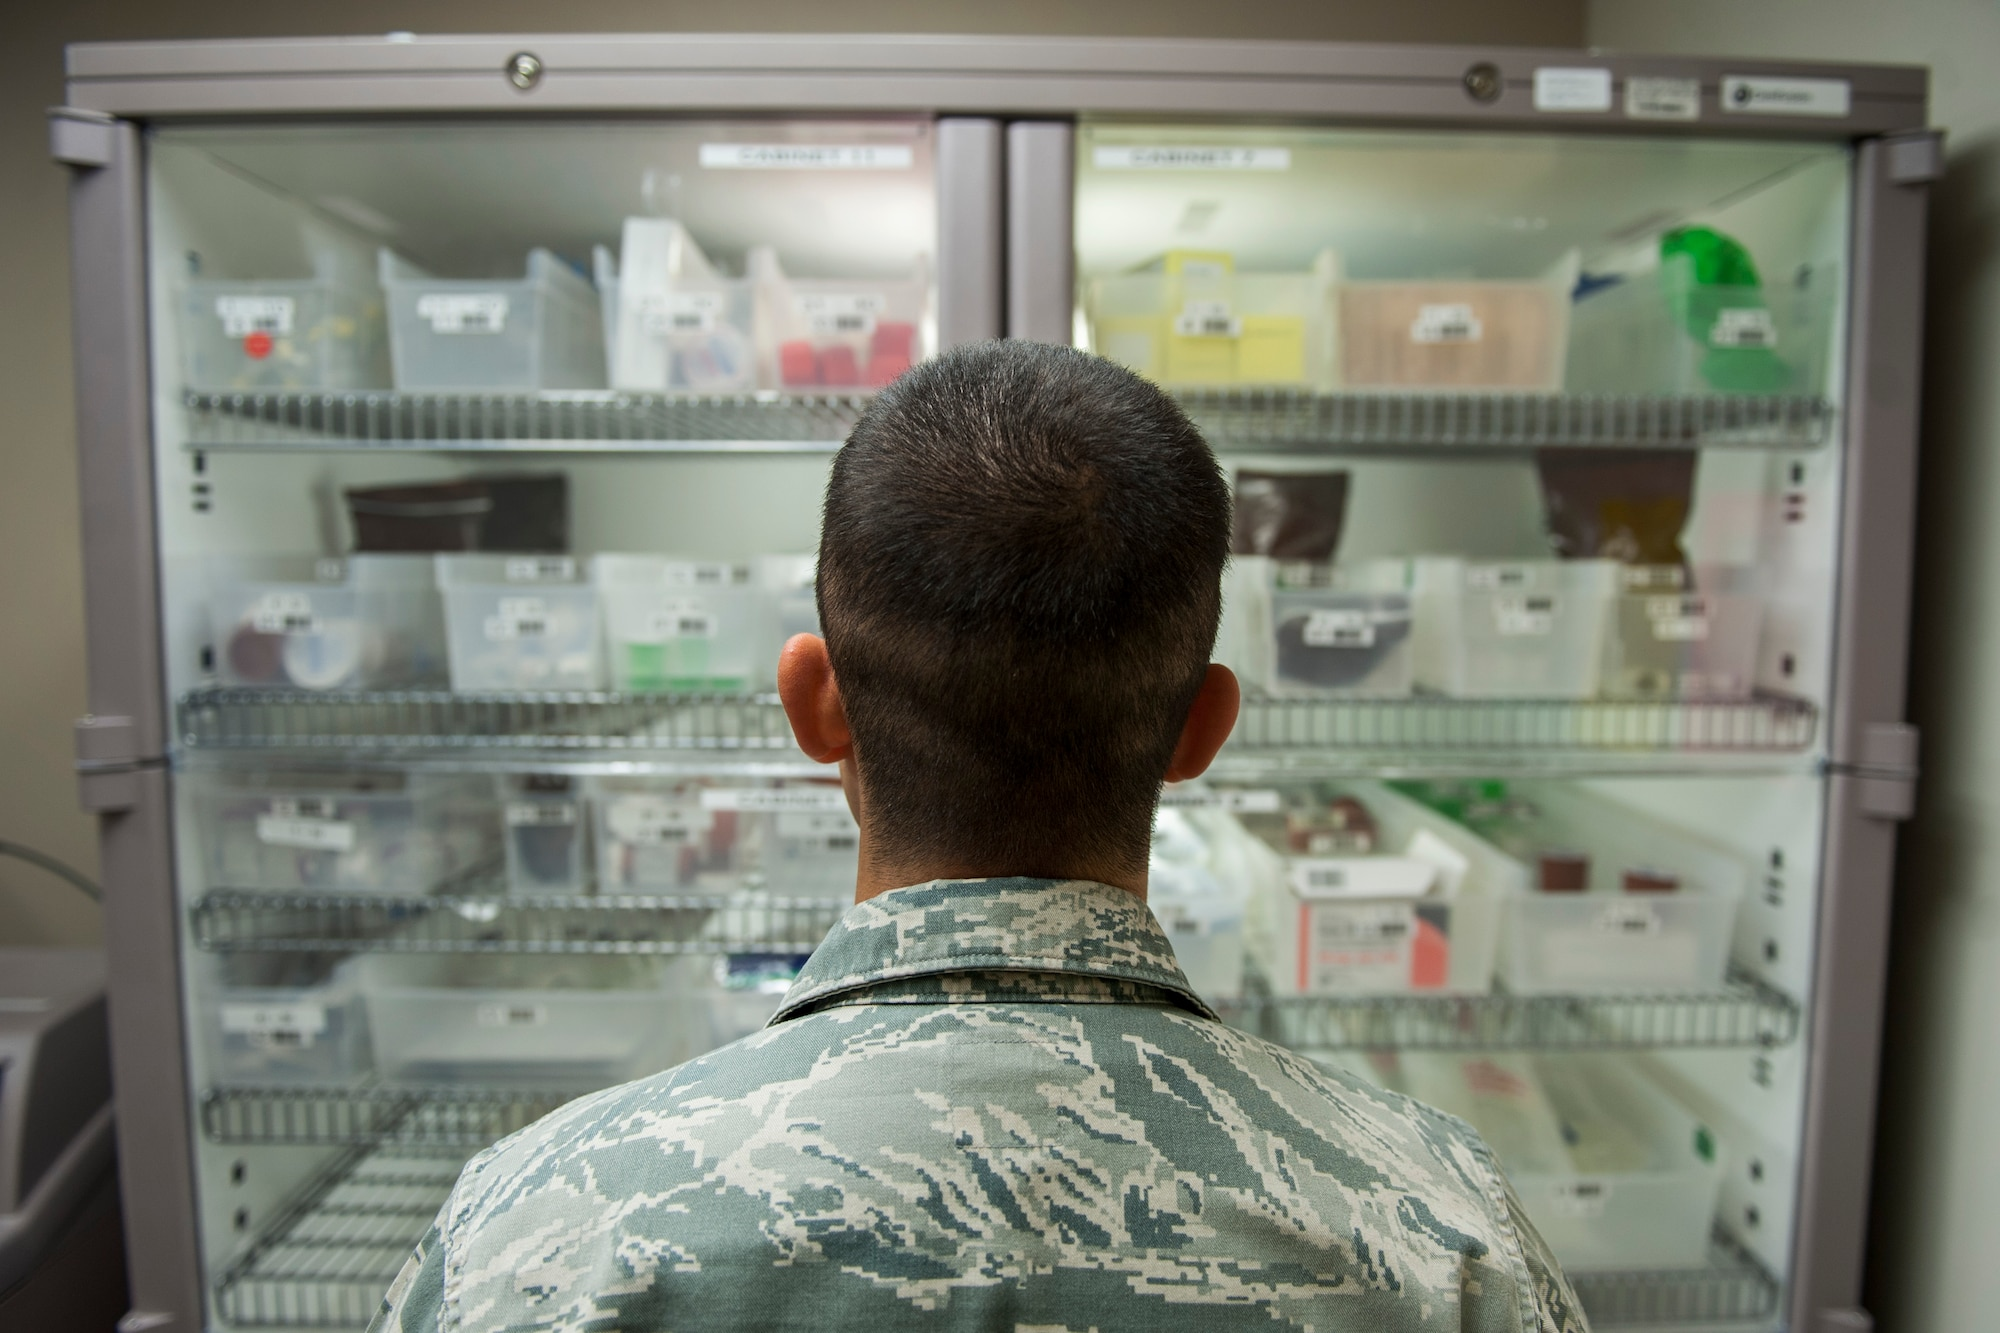 Staff Sgt. Victor Rodriguez, 99th Medical Support Squadron pharmacy technician, refills the Pyxis machine in the intensive care unit of the Mike O'Callaghan Federal Medical Center on Nellis Air Force Base, Nev., Nov. 22, 2016. With the Pyxis machine being utilized, the pharmacy has seen its inaccuracy rates fall. (U.S. Air Force photo by Airman 1st Class Kevin Tanenbaum/Released)